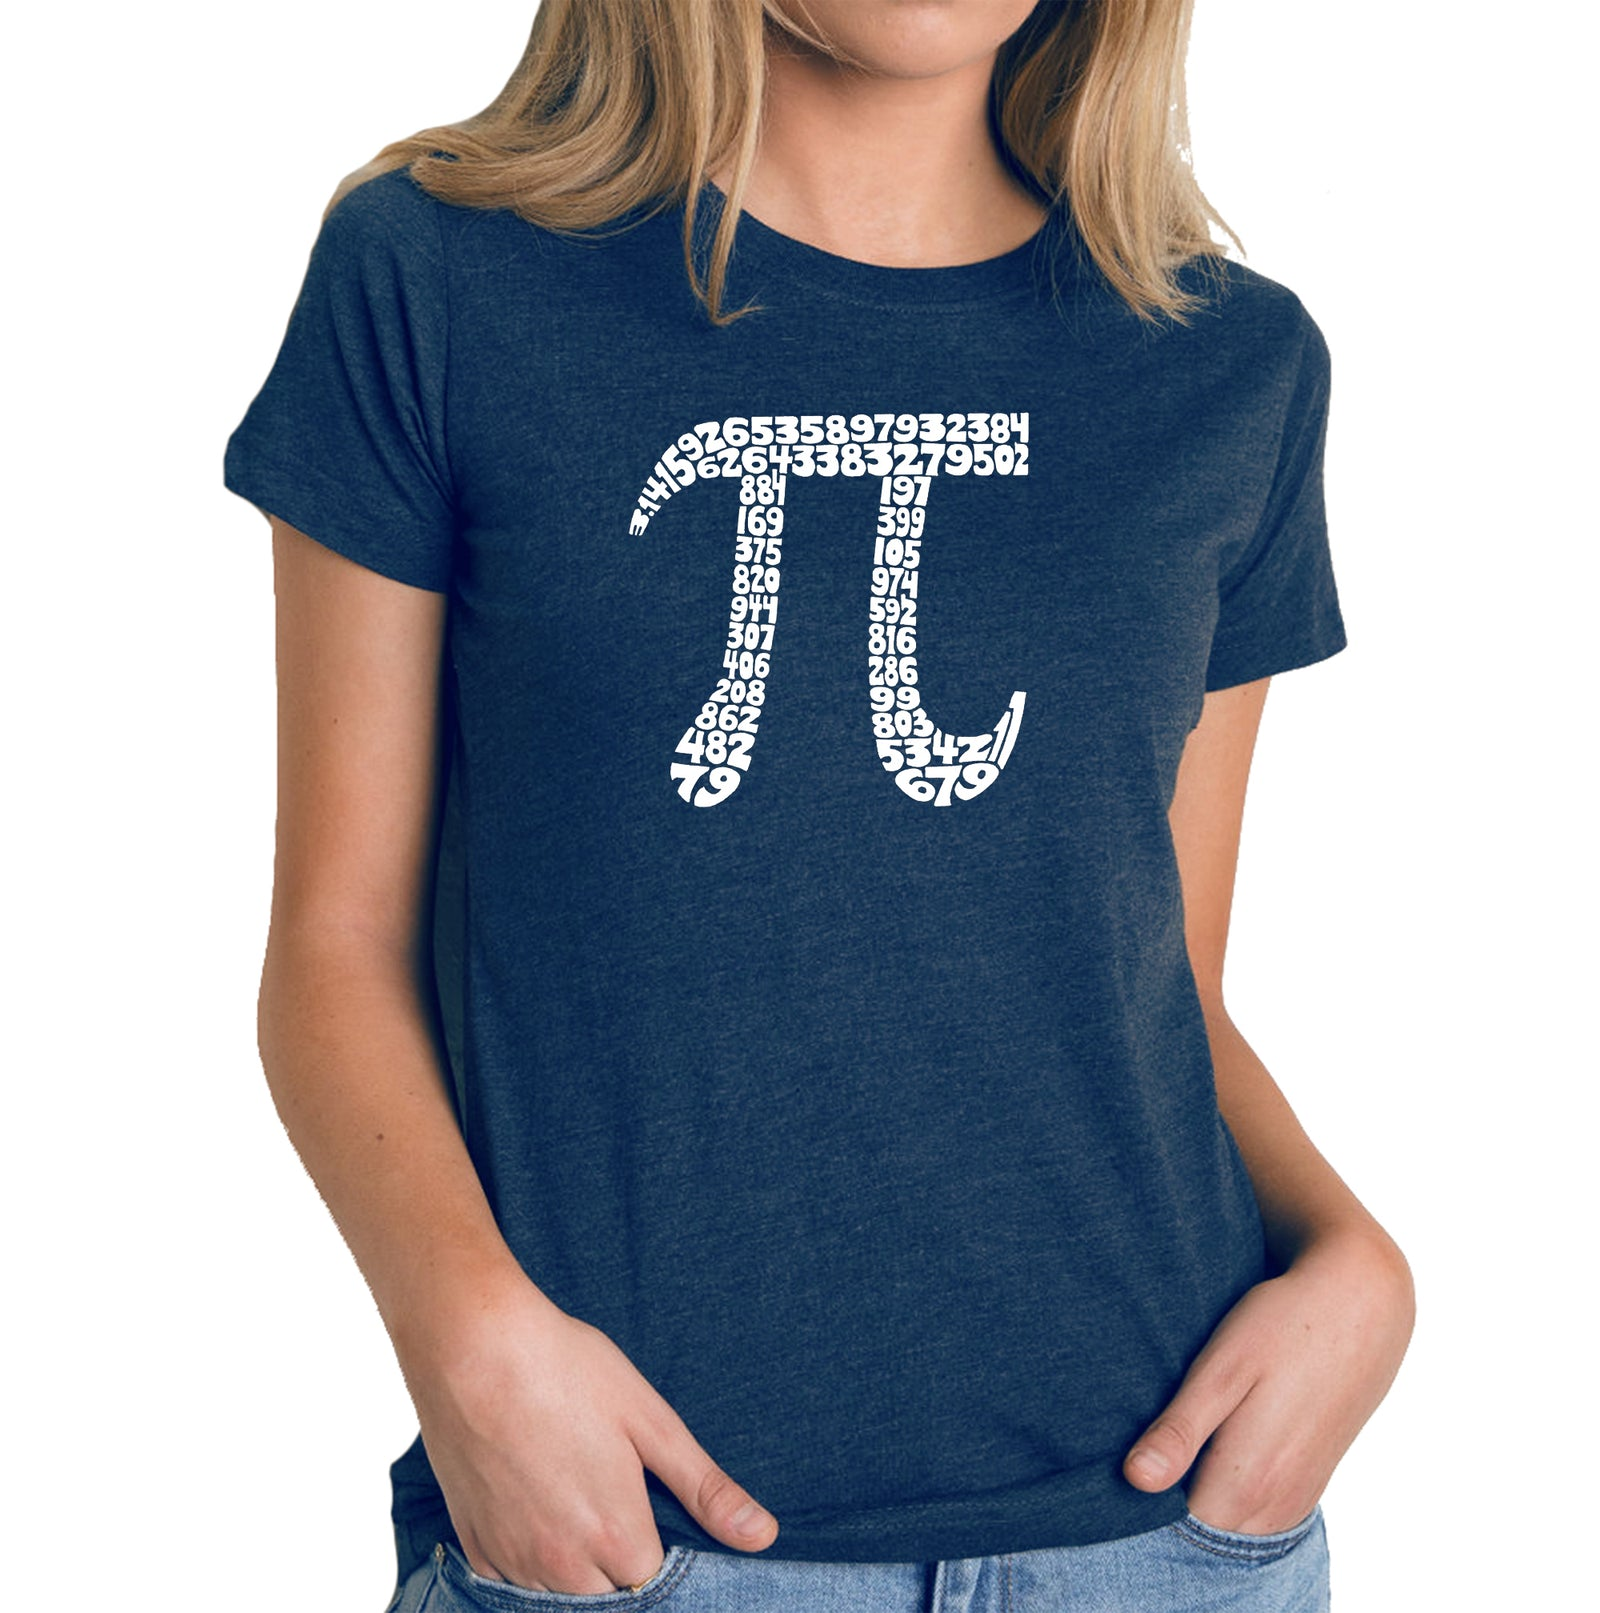 Women's Premium Blend Word Art T-shirt - THE FIRST 100 DIGITS OF PI